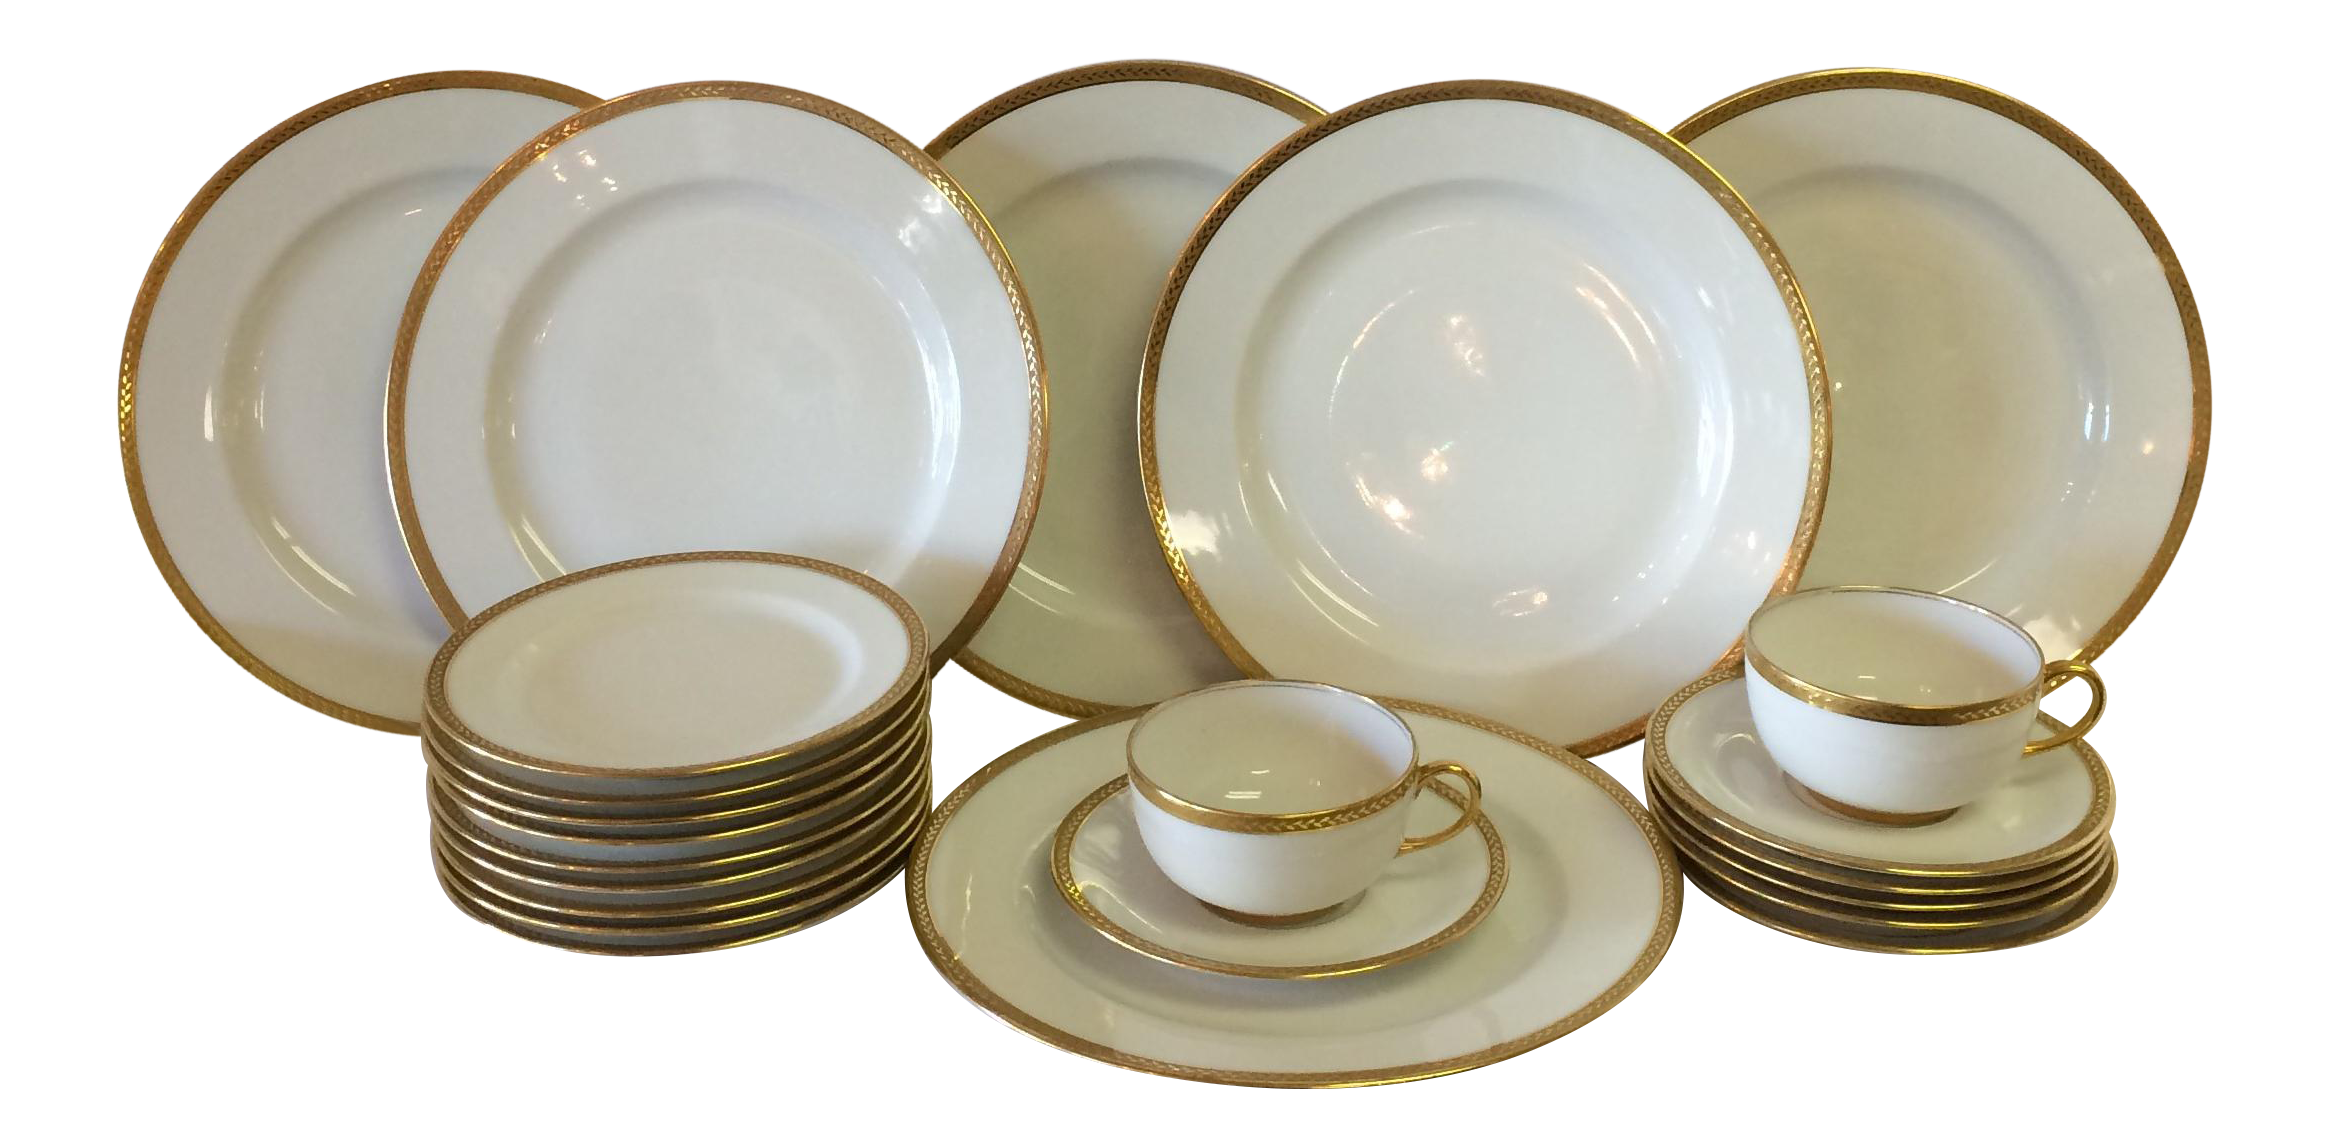 Limoges France Vignaud White With Gold China 23 Piece Gold China Limoges Leaf Decor White and gold dinner plates